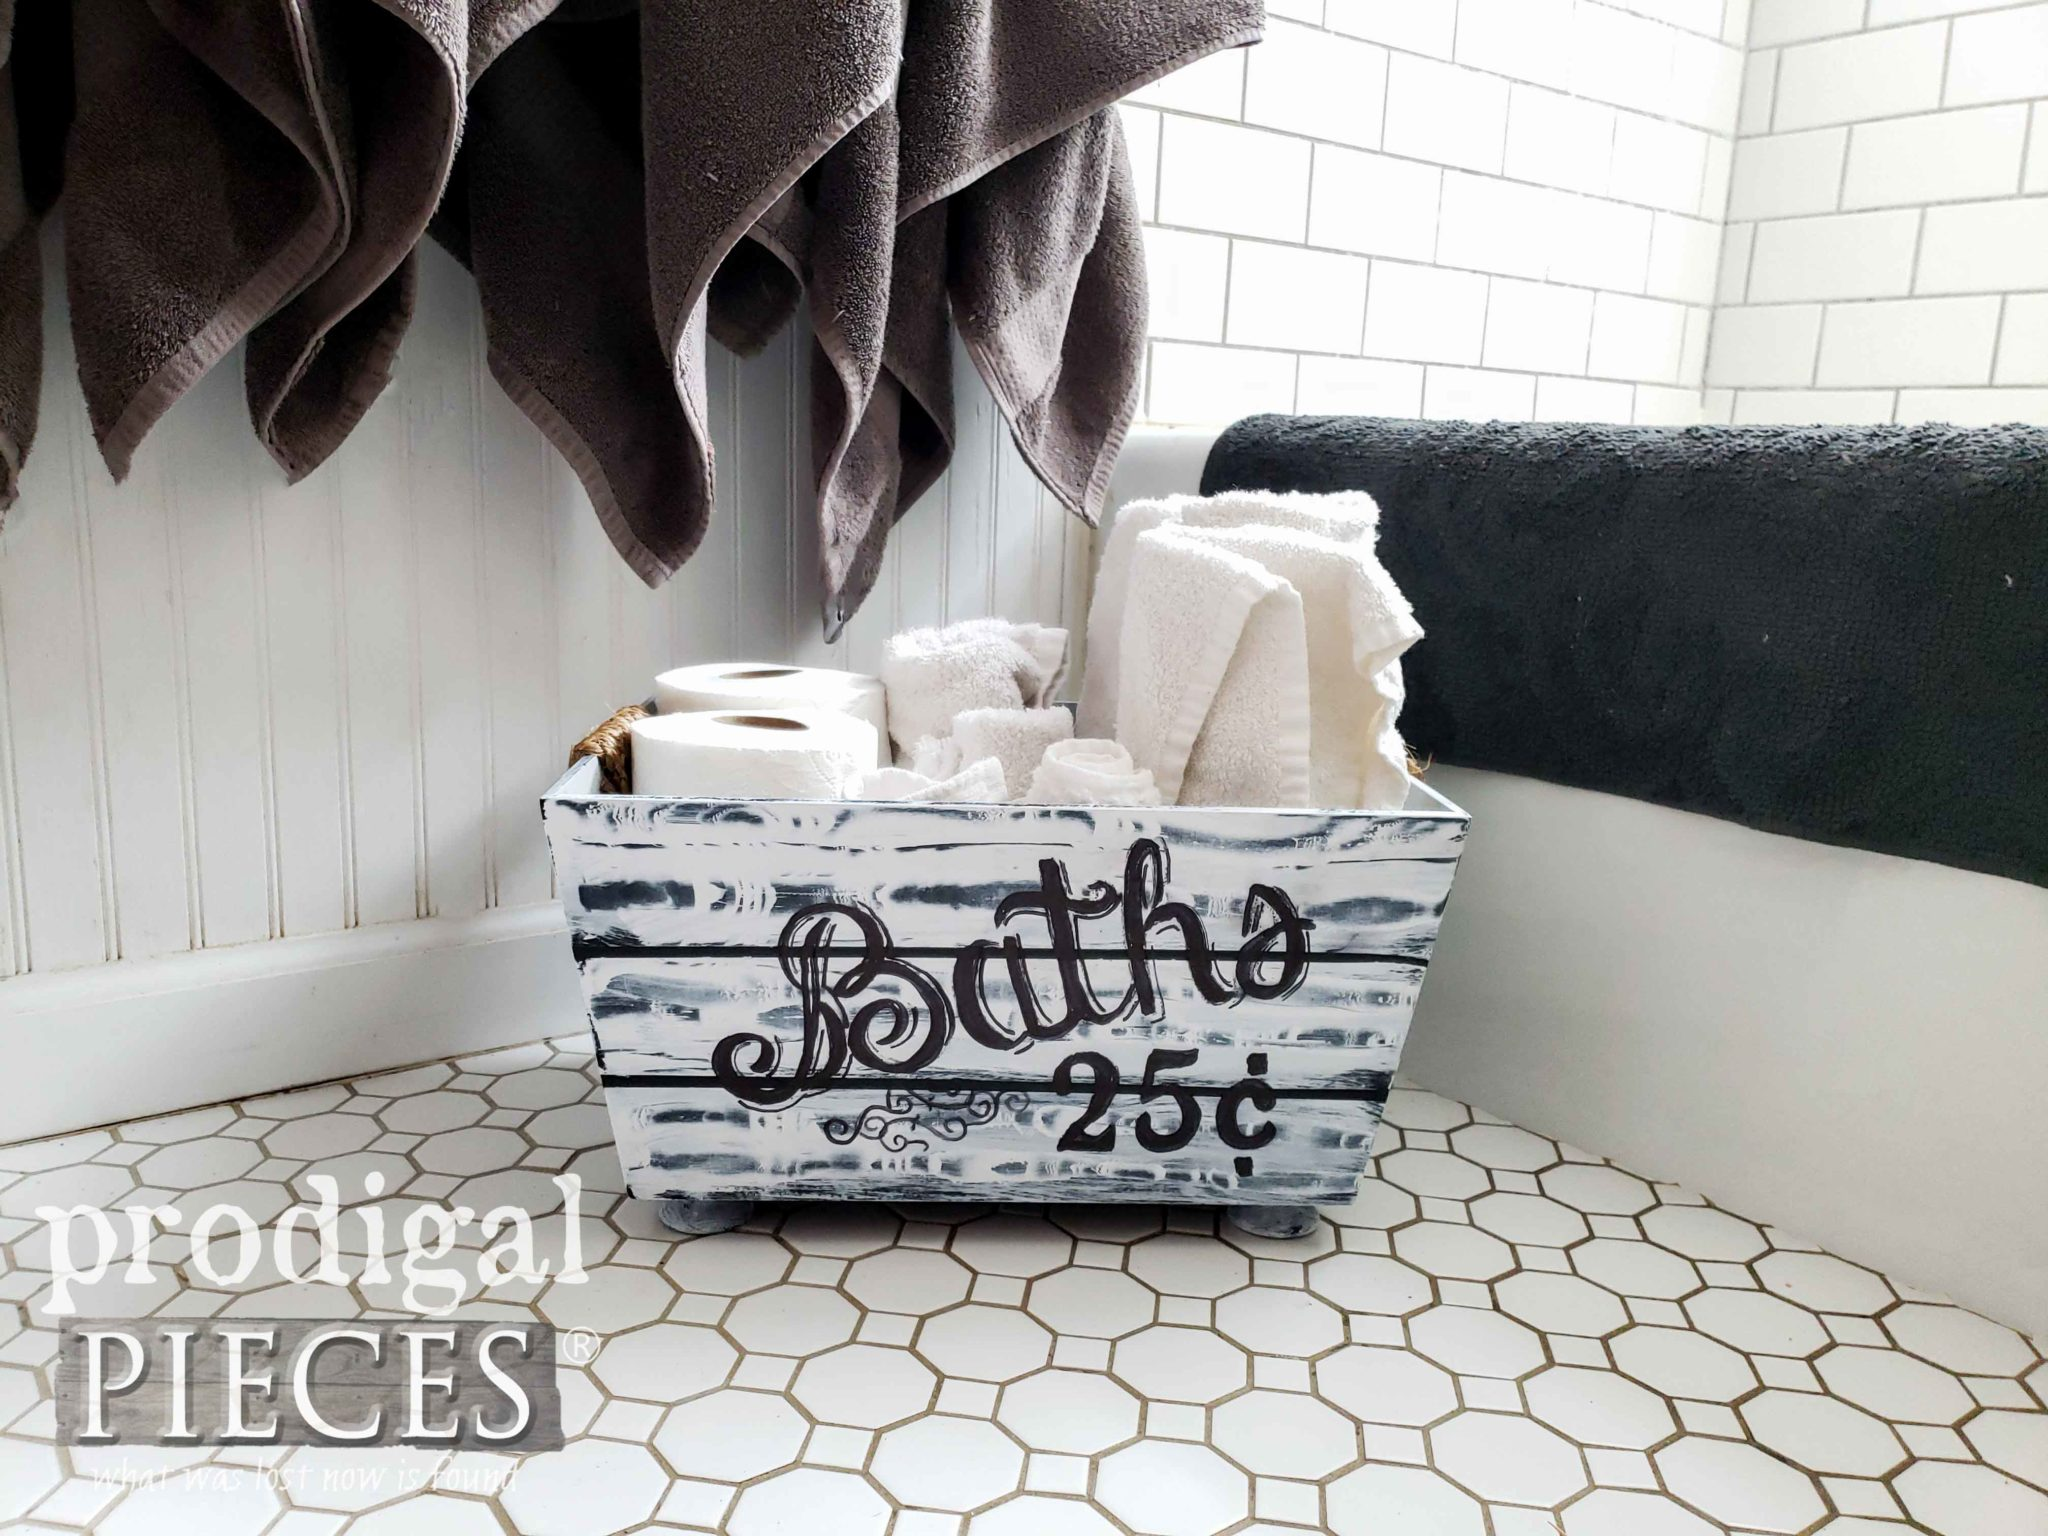 DIY Storage Bin for Farmhouse Style Bathroom by Larissa of Prodigal Pieces | prodigalpieces.com #prodigalpieces.com #prodigalpieces #diy #farmhouse #home #shopping #homedecor #homedecorideas #vintage